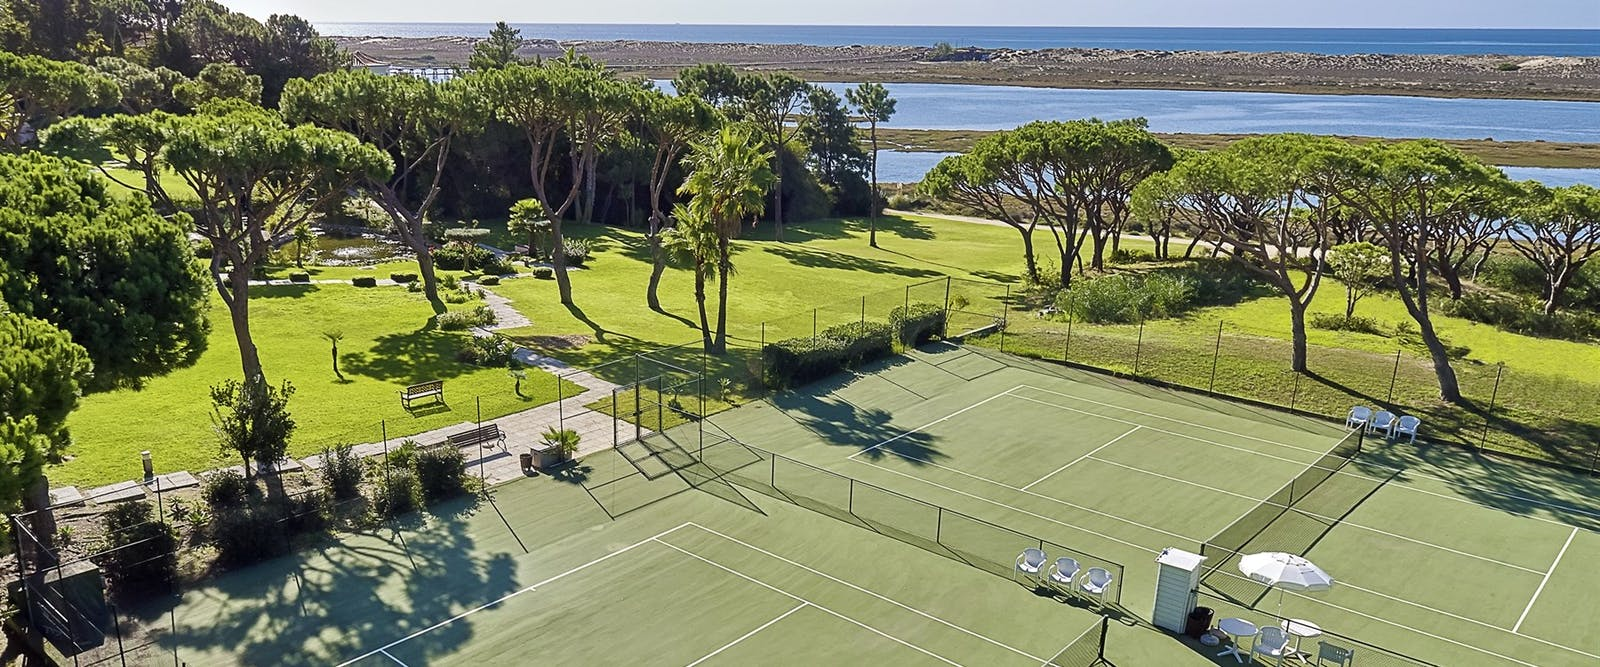 Tennis Courts at Hotel Quinta Do Lago, Algarve, Portugal